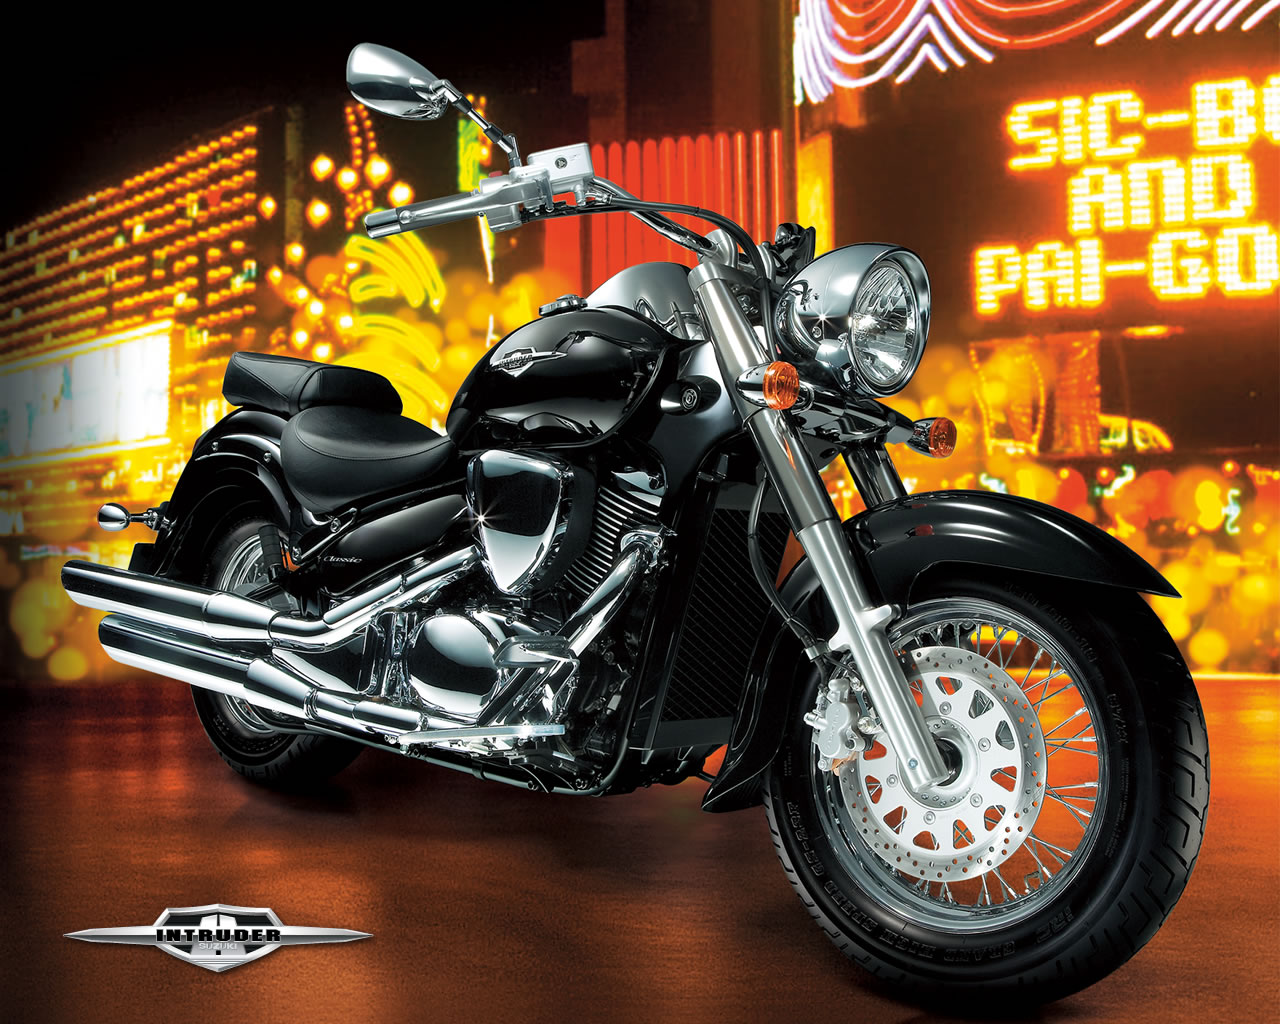 suzuki intruder vs700 / vs750 / vs800 service repair manual suzuki ...